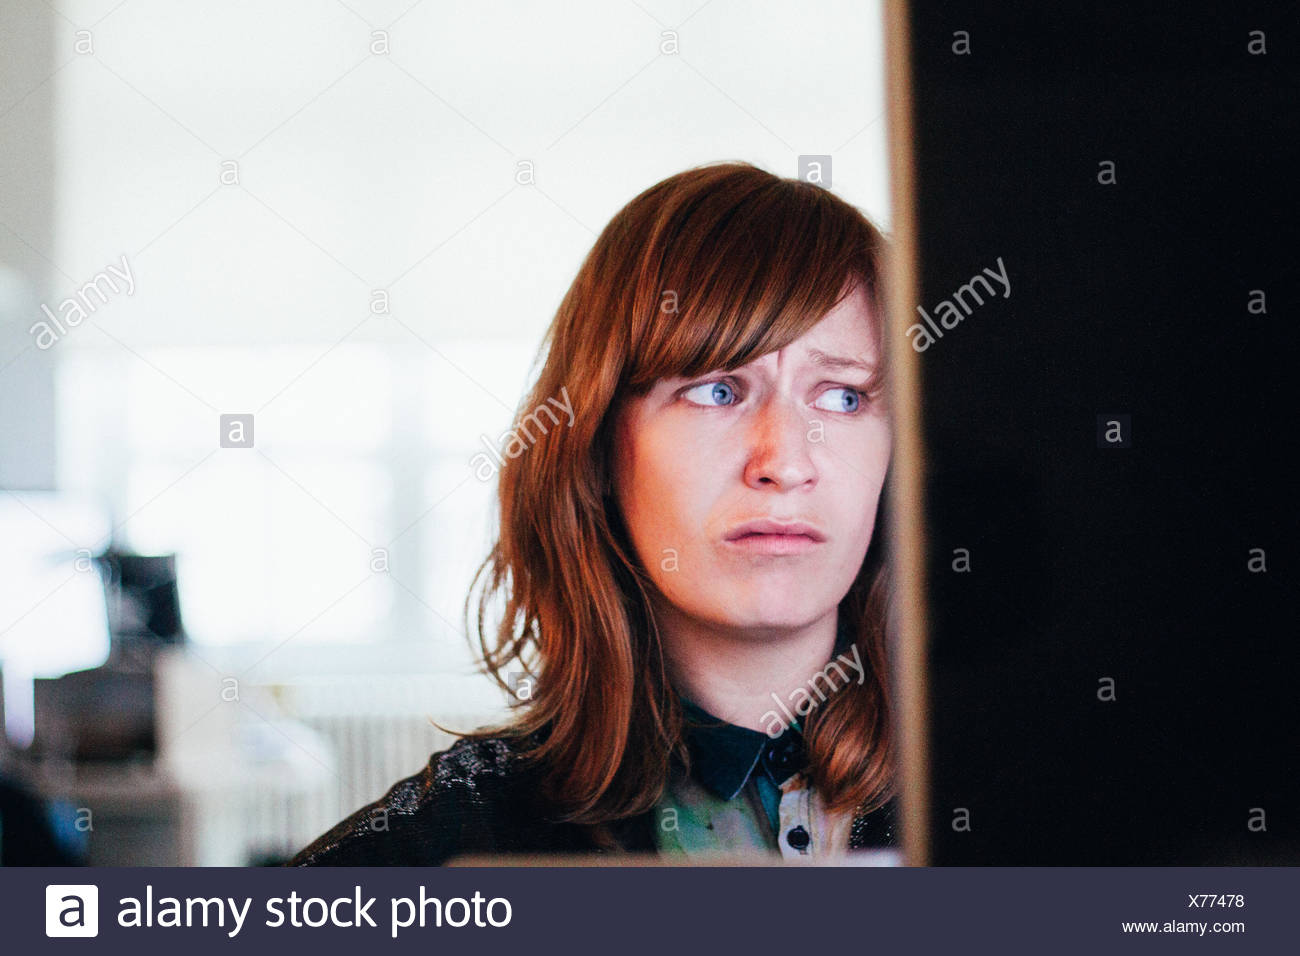 Close-Up Of Worried Woman While Sitting At Computer Desk In Office - Stock Image